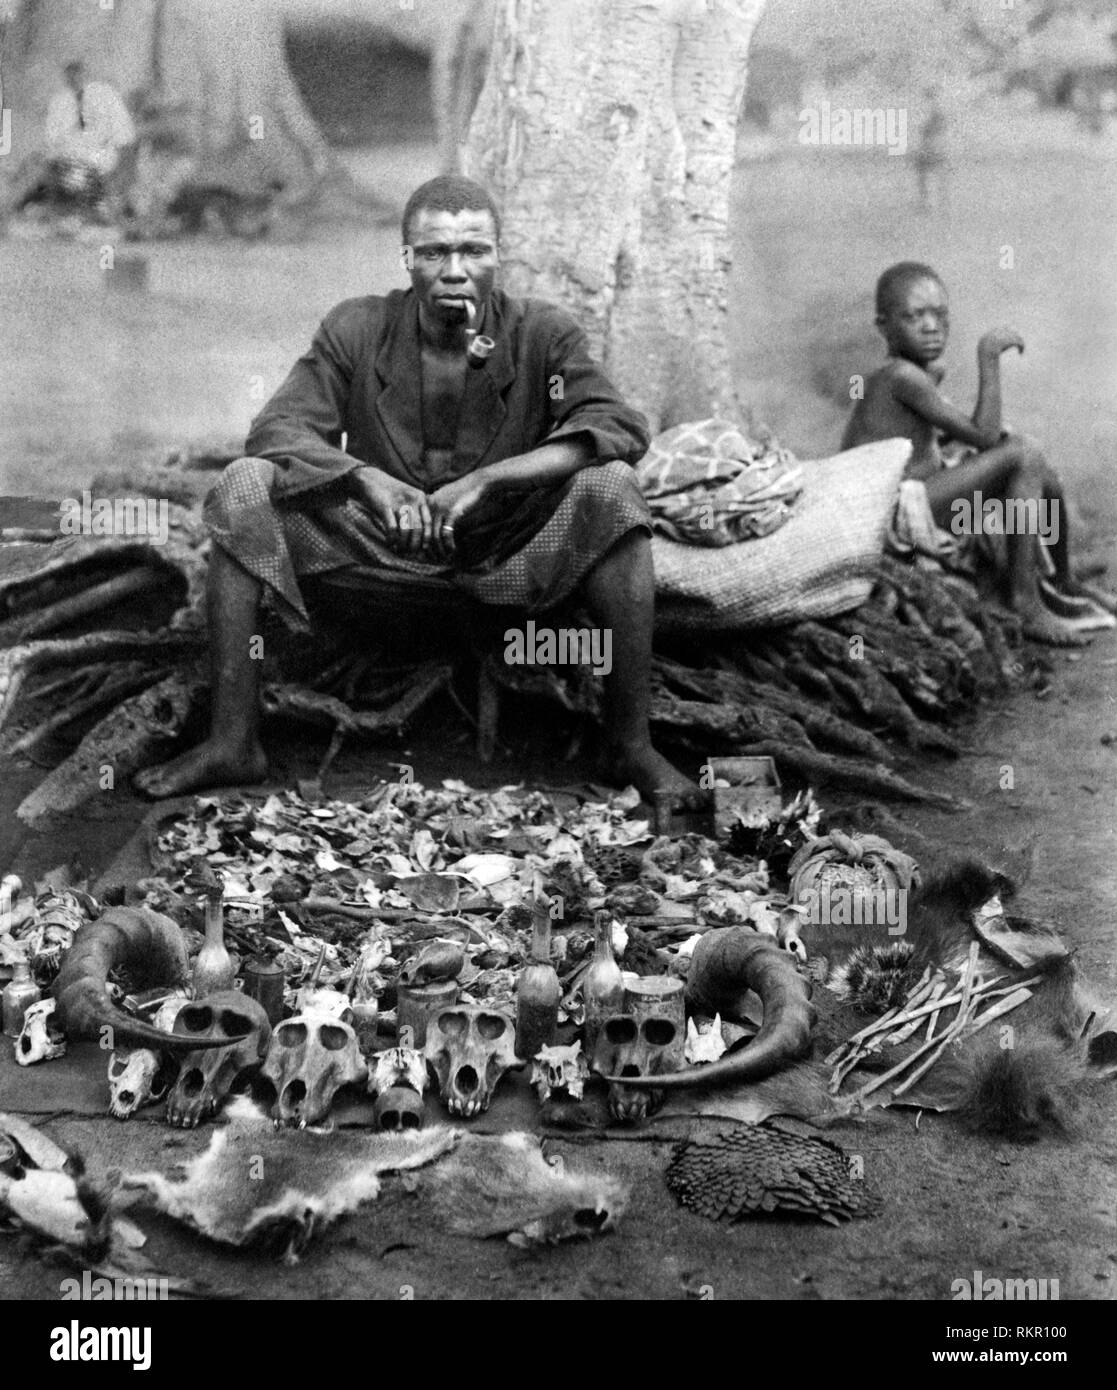 Witchcraft Africa Stock Photos & Witchcraft Africa Stock Images - Alamy